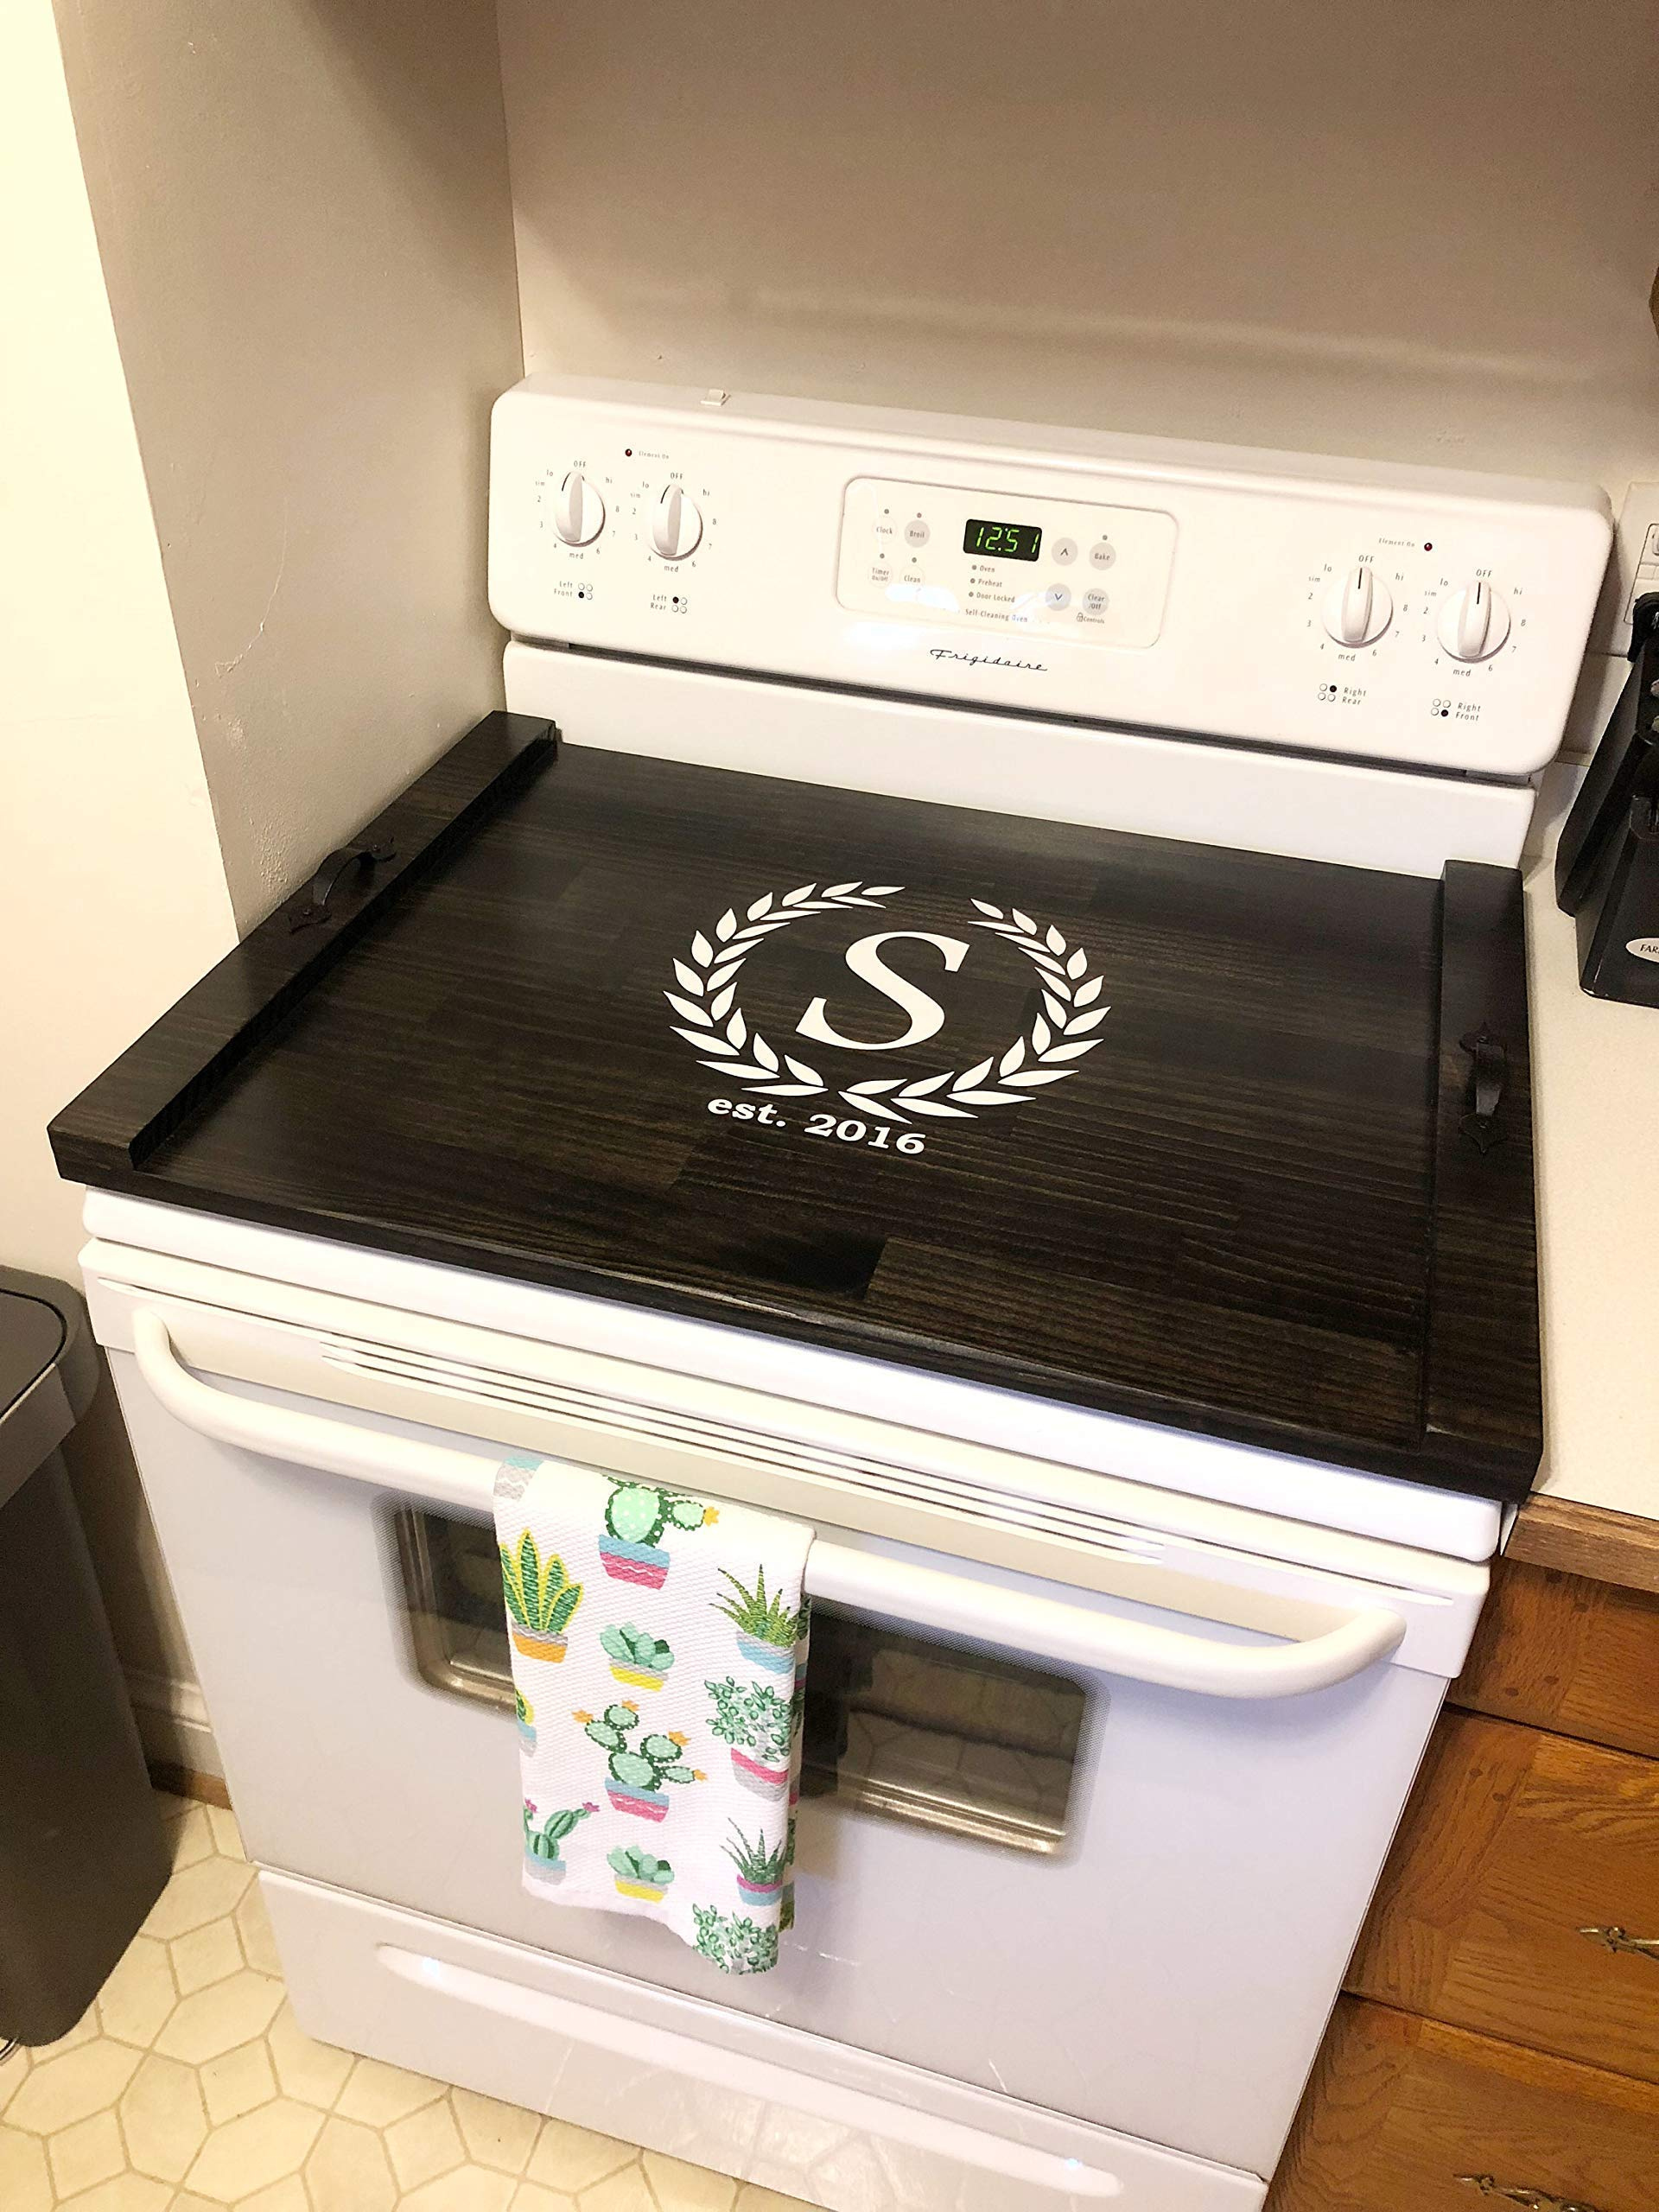 Rustic Stove Top Cover, Wooden Tray For Stove, Monogram Stove Cover, Stove Tray, Decorative Tray by The Appalachian Artisans (Image #4)